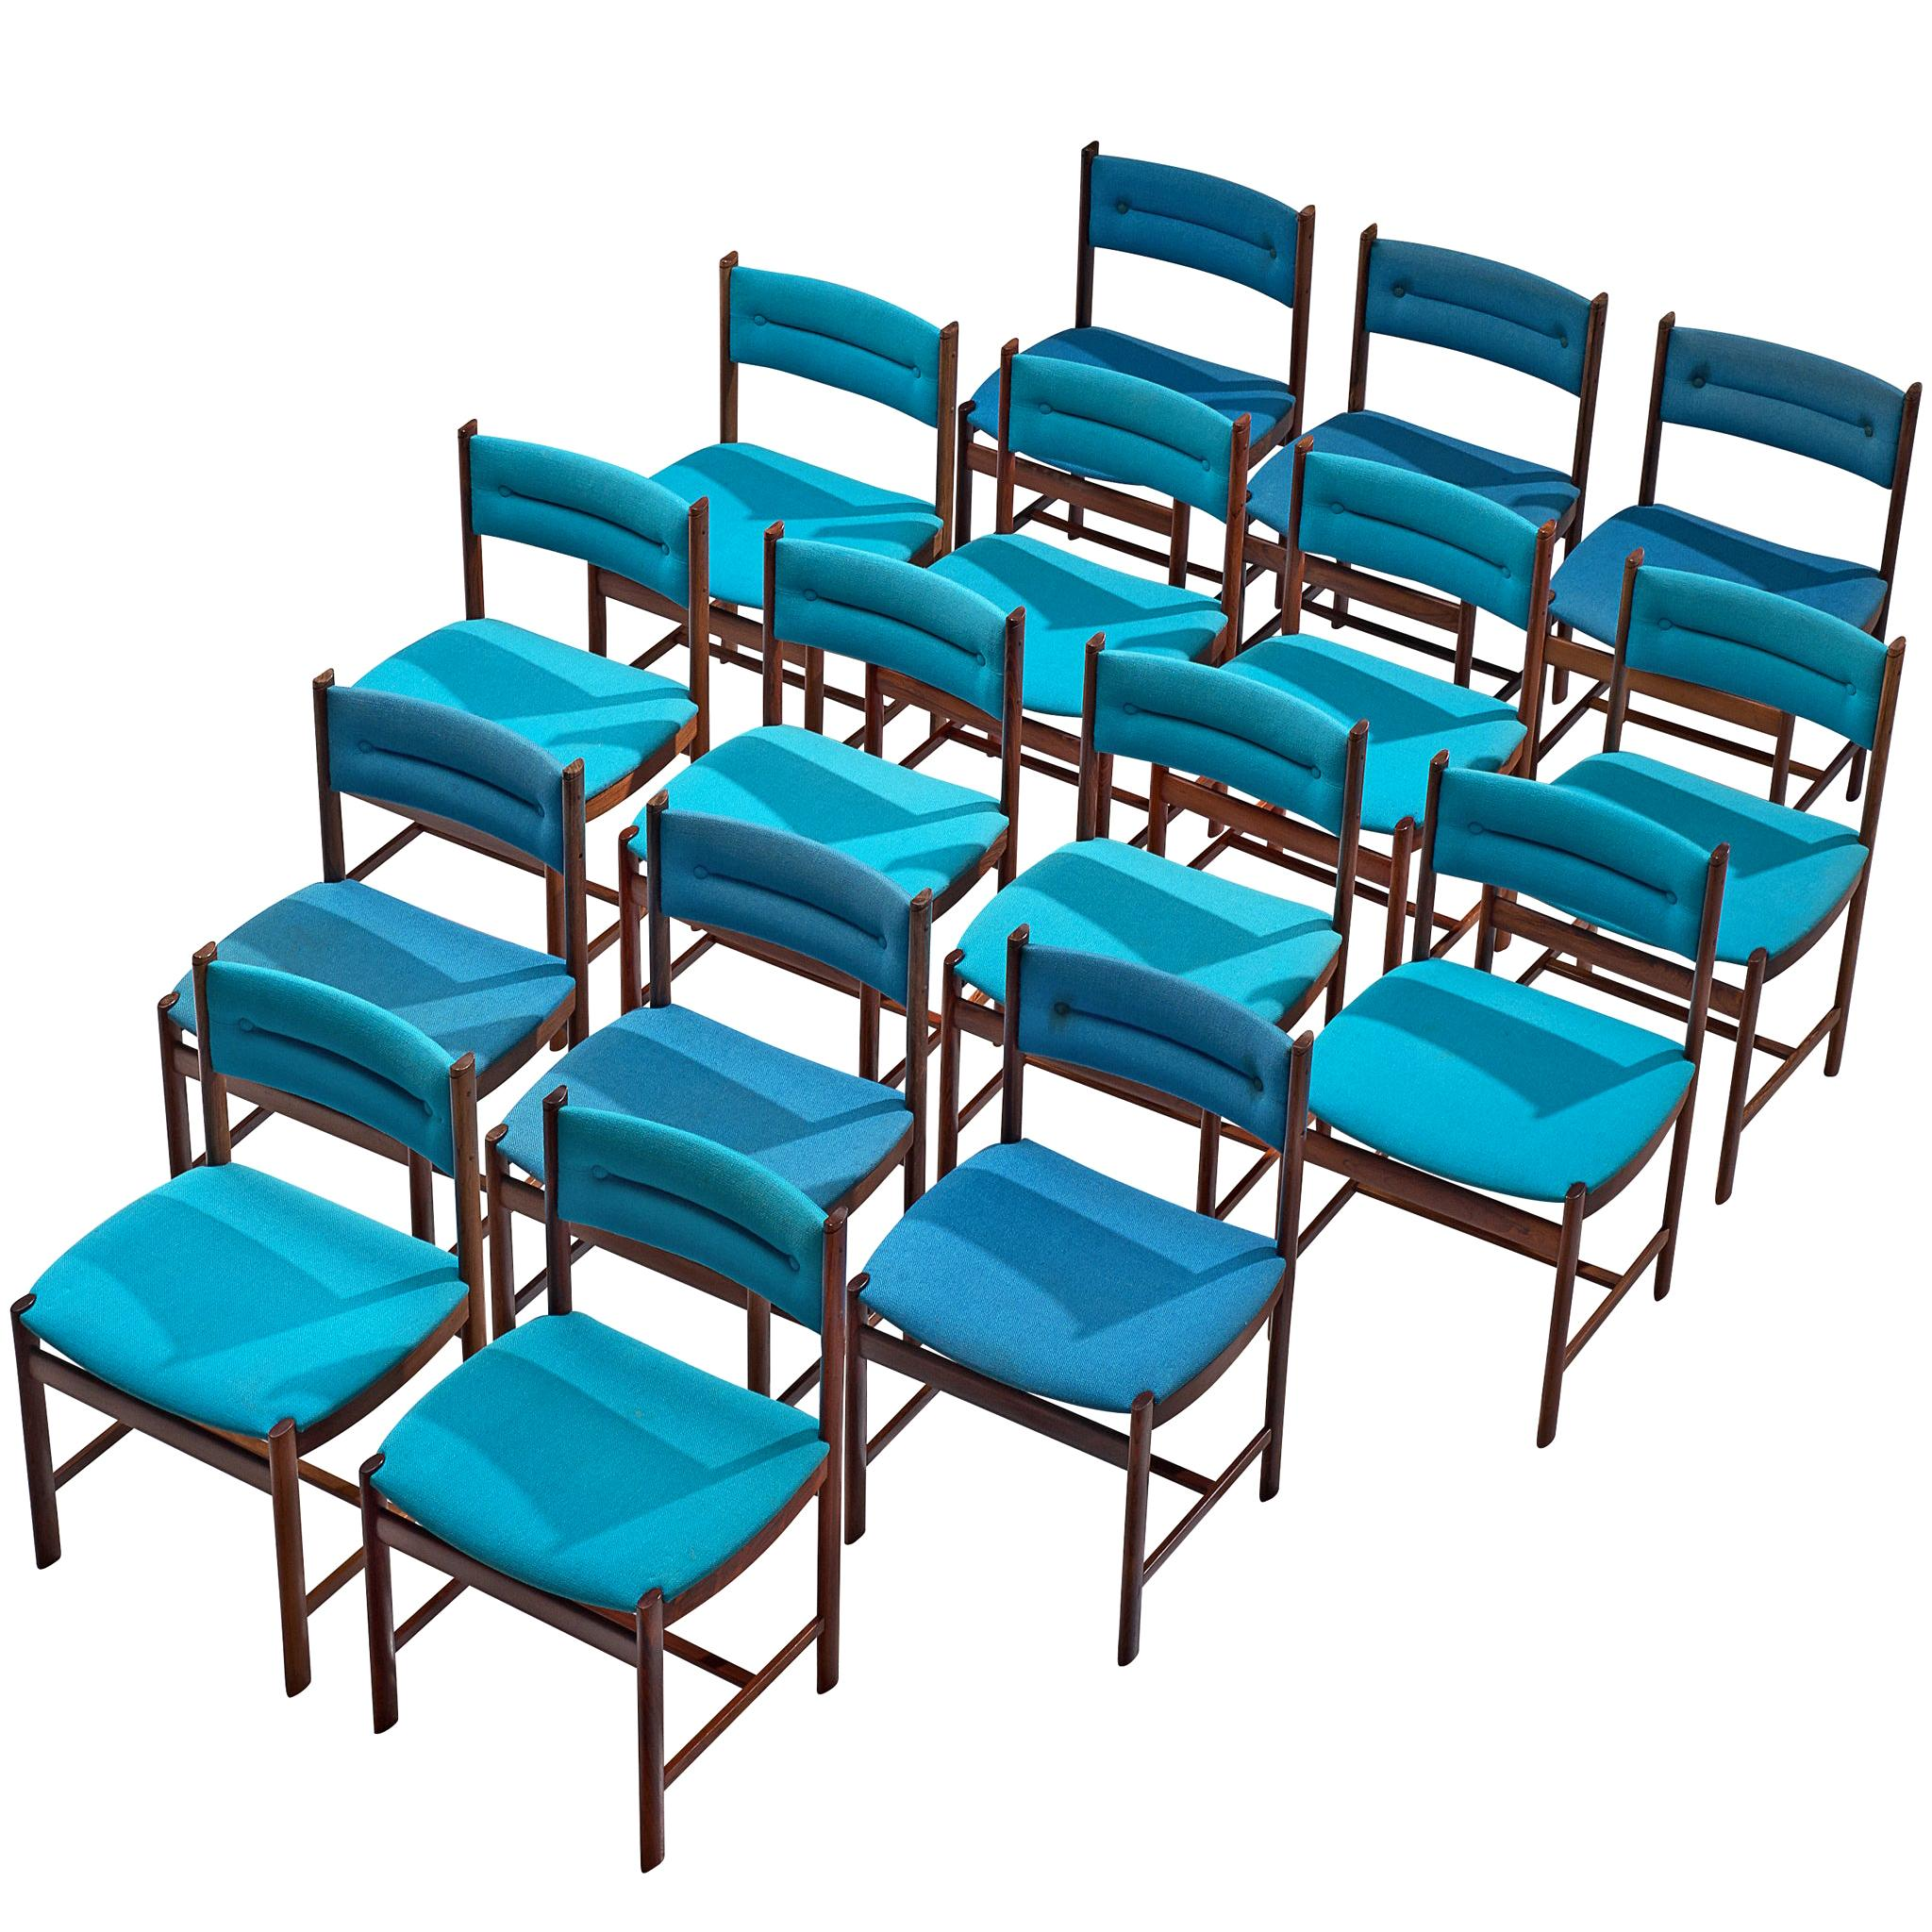 Swell 1960S Chairs 2 155 For Sale At 1Stdibs Ocoug Best Dining Table And Chair Ideas Images Ocougorg